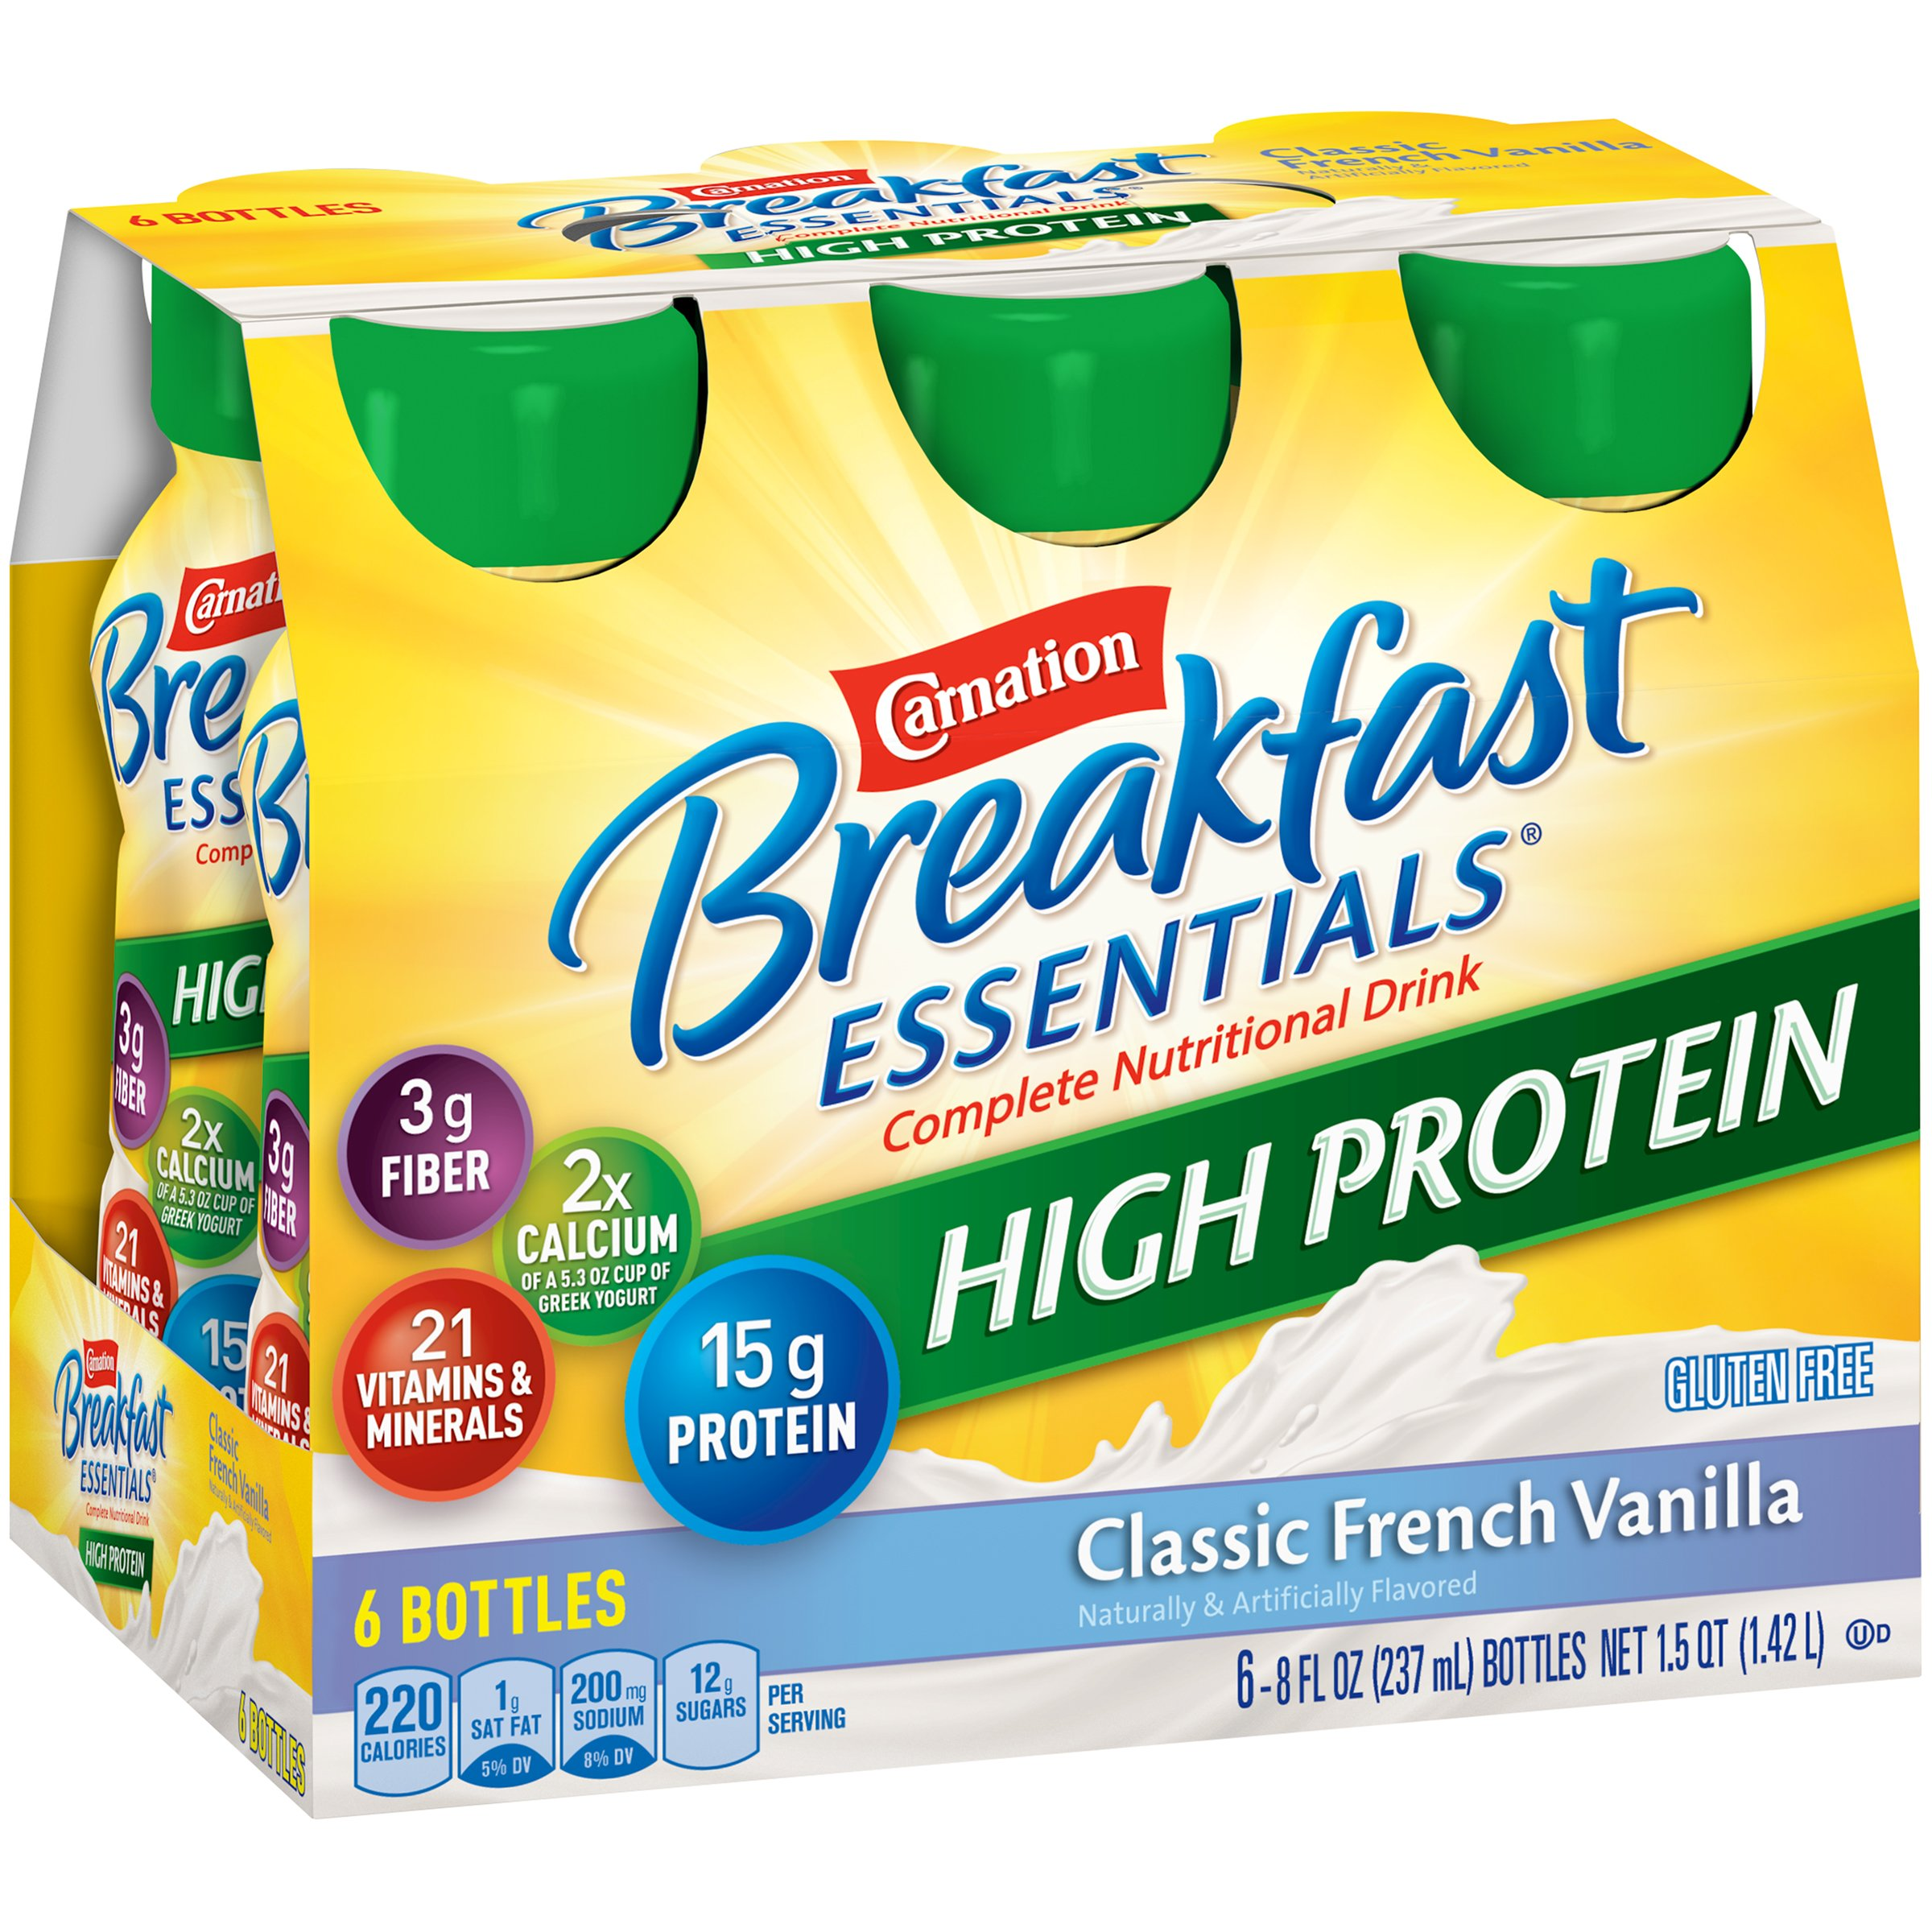 Carnation Breakfast Essentials High Protein Ready-to-Drink, Classic French Vanilla, 8 fl oz Bottle, 24 Pack